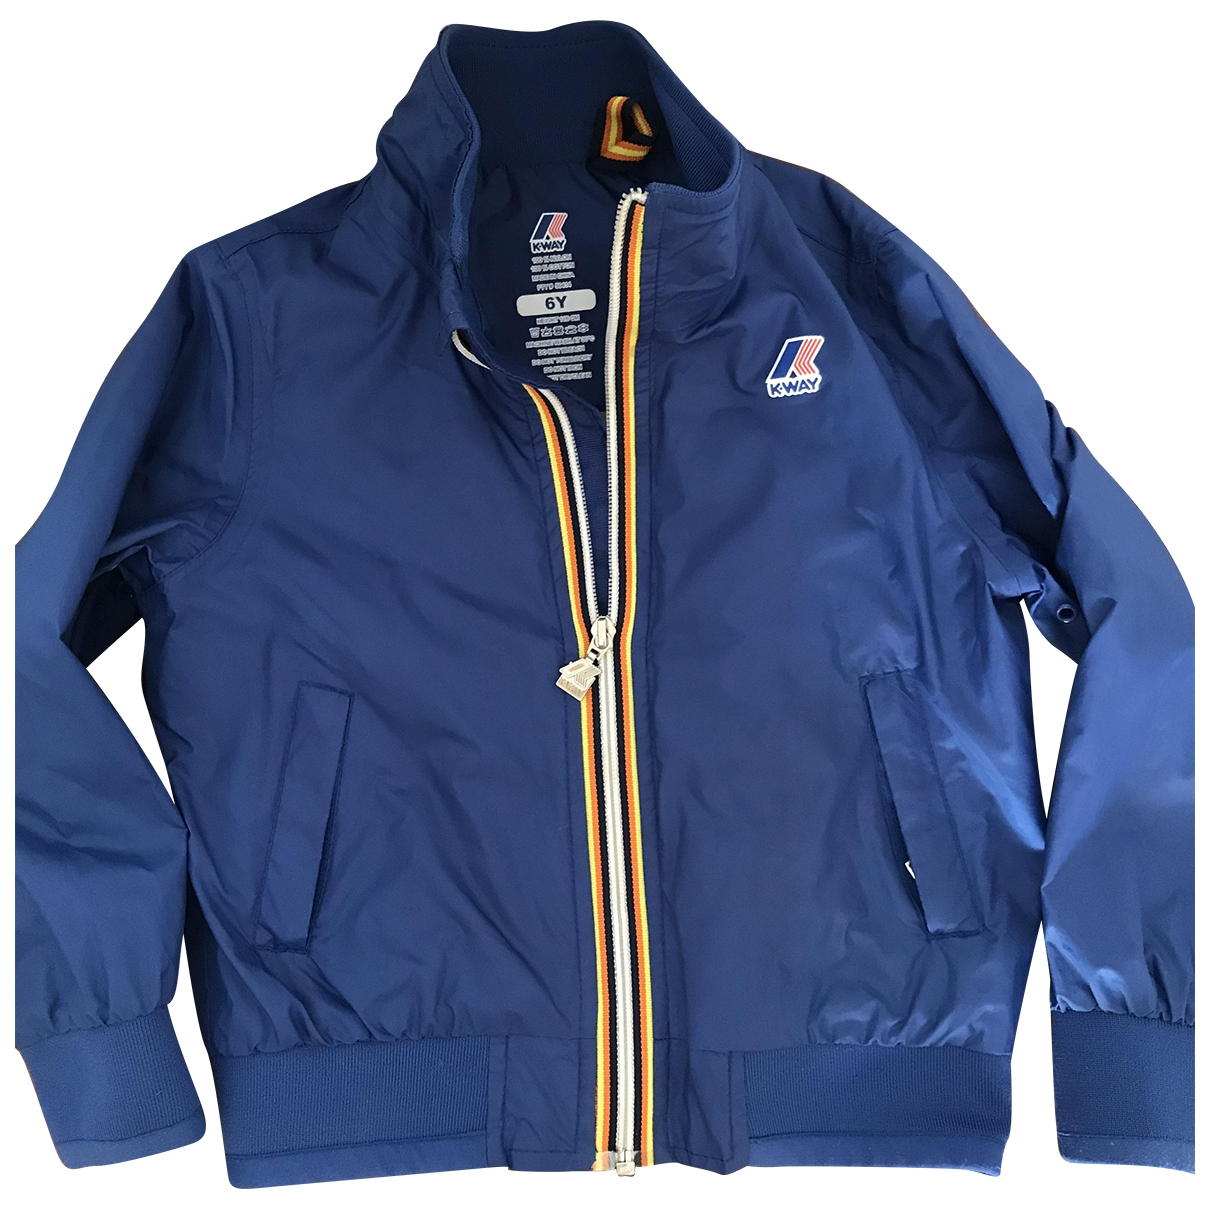 K-way \N Blue jacket & coat for Kids 6 years - up to 114cm FR